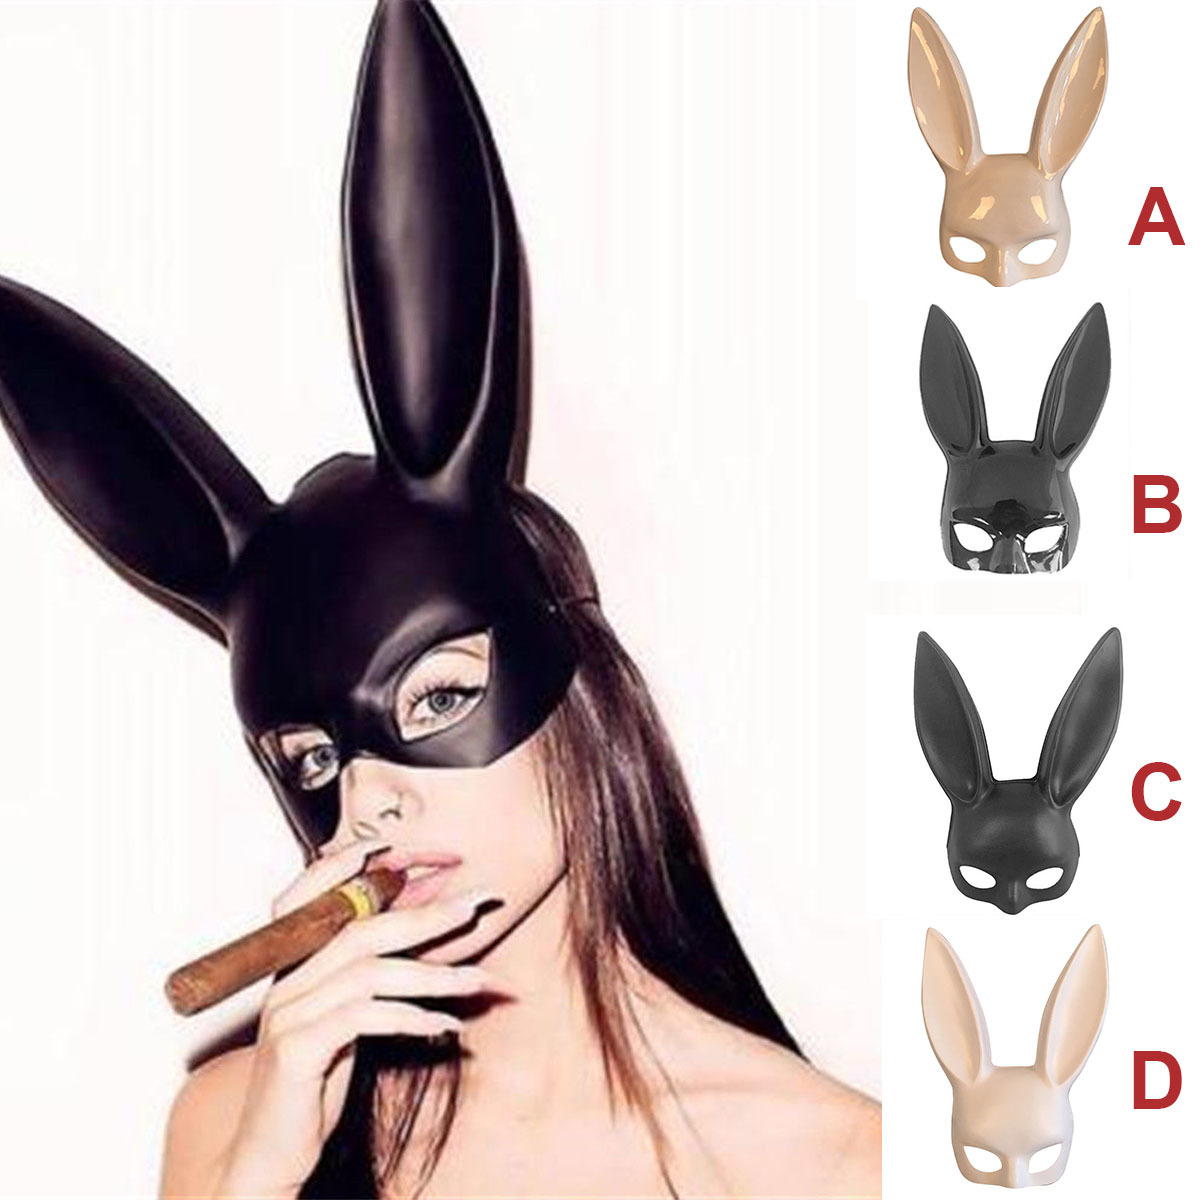 <font><b>Sexy</b></font> <font><b>Women</b></font> Bunny Mask <font><b>Halloween</b></font> Cosplay <font><b>Costume</b></font> Props Hood Masque for Masquerade Rave Carnival Party Rabbit Ear Masks Headwear image